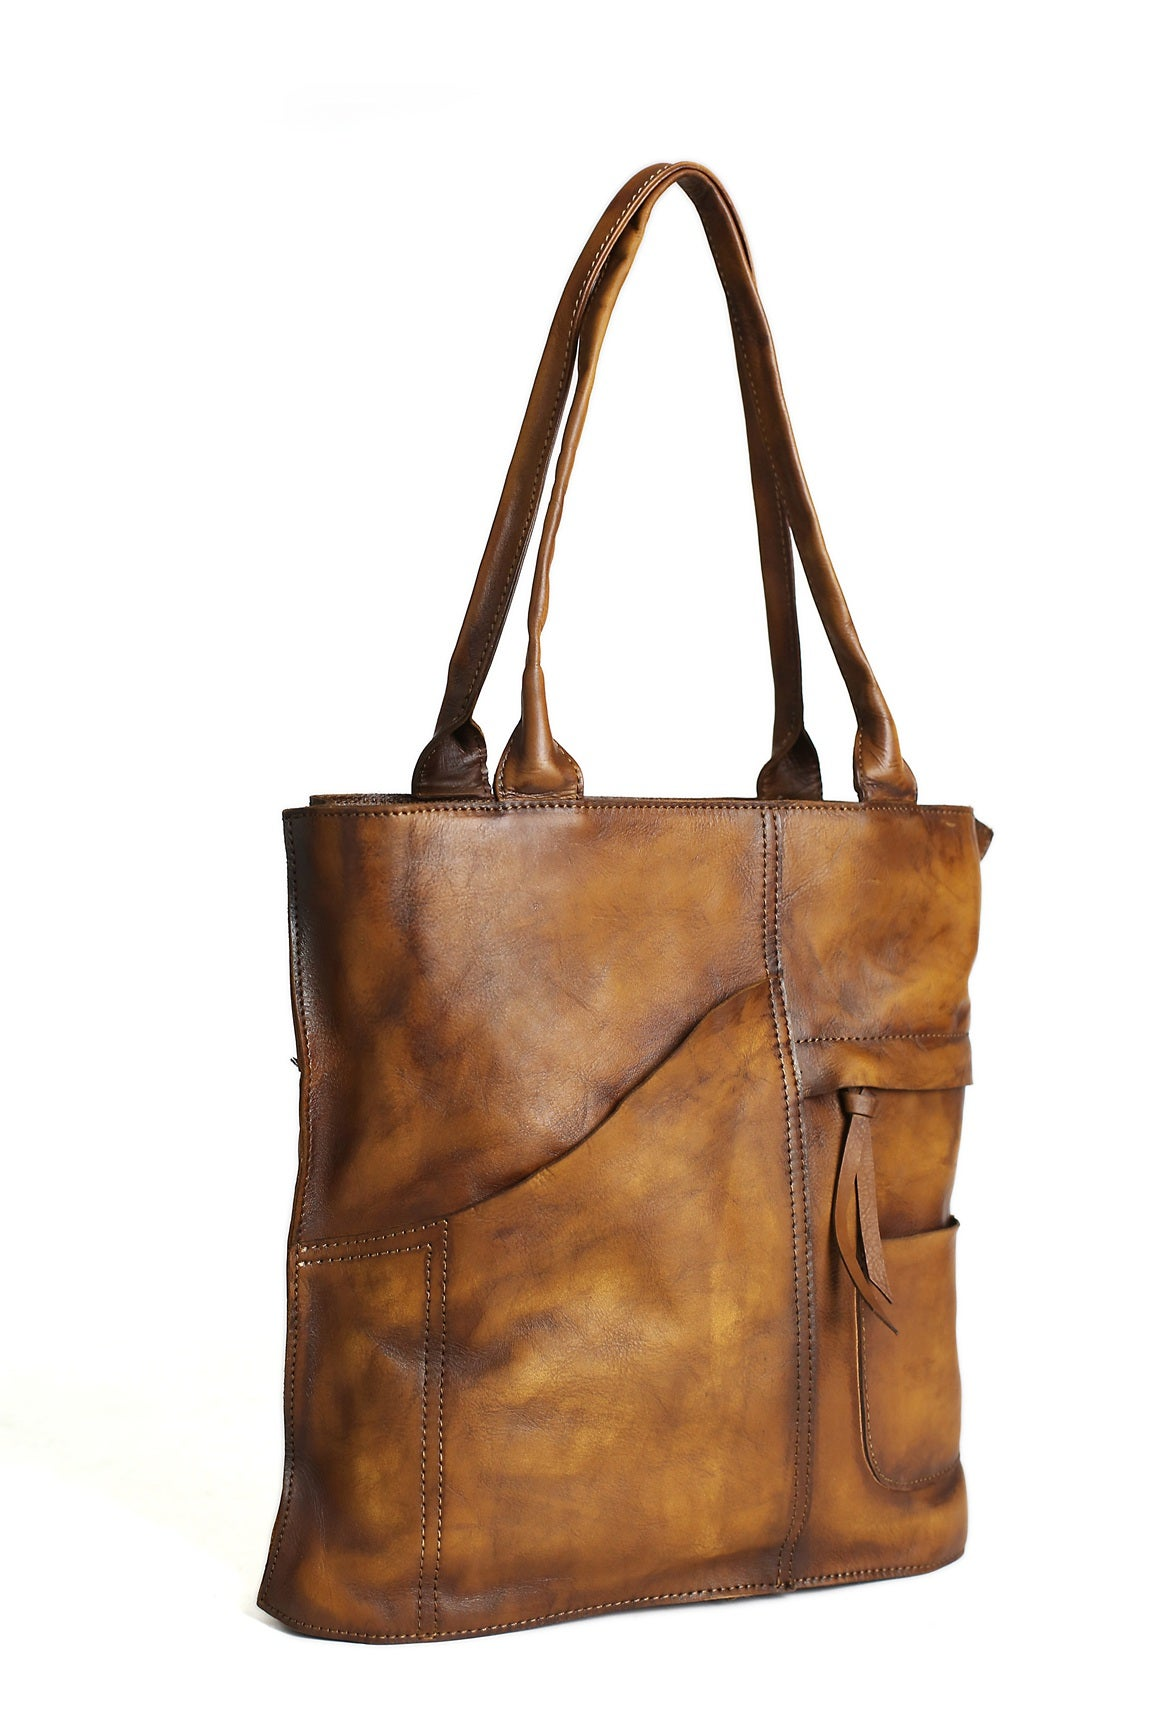 Shop Leather Totes at eBags - experts in bags and accessories since We offer easy returns, expert advice, and millions of customer reviews.